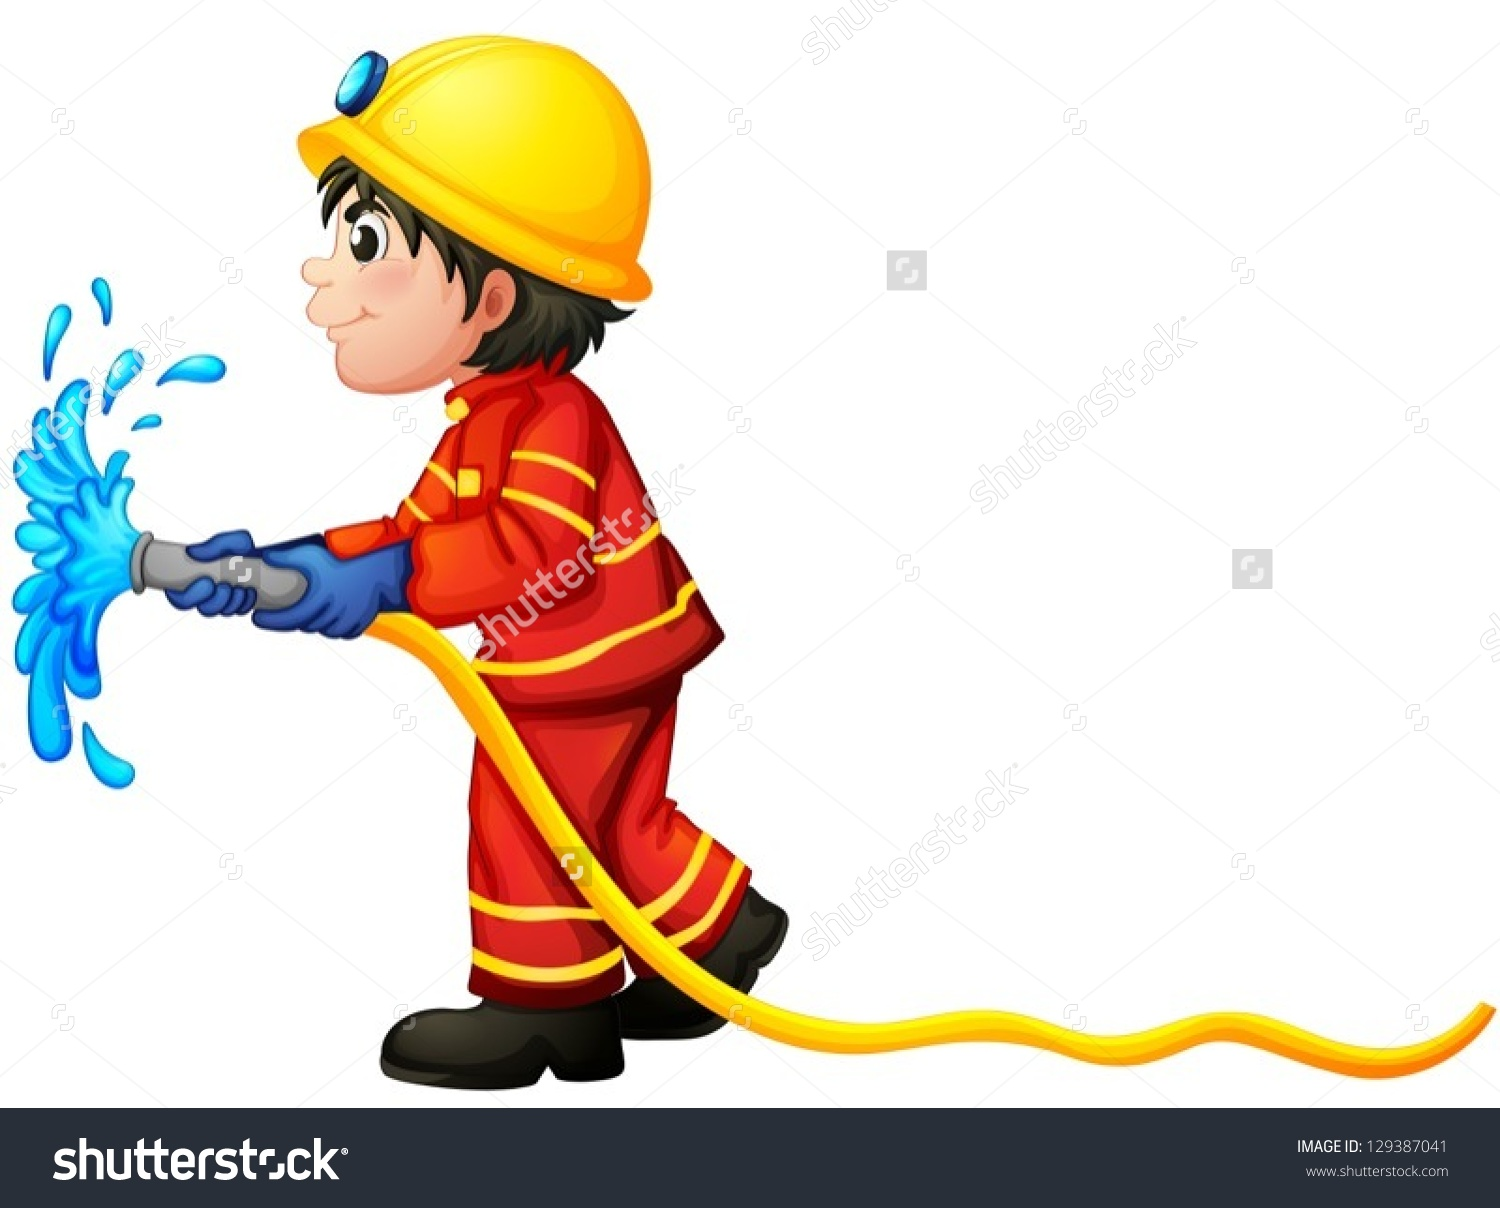 Clipart Of Fire Hose Squirting Water.